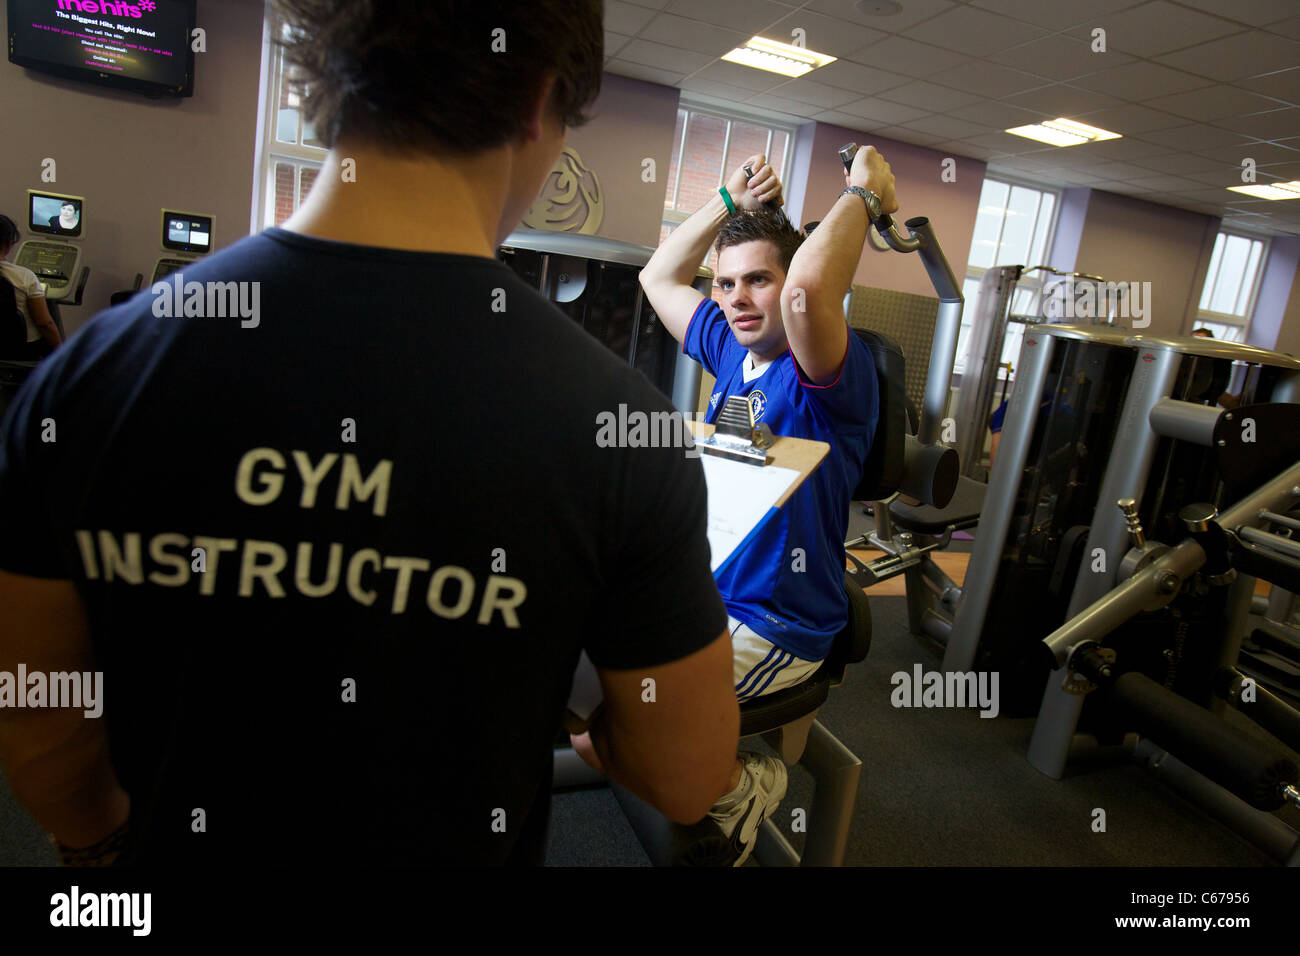 Gym Instructor Conducting A Gym Assessment On An Indoor Body ...